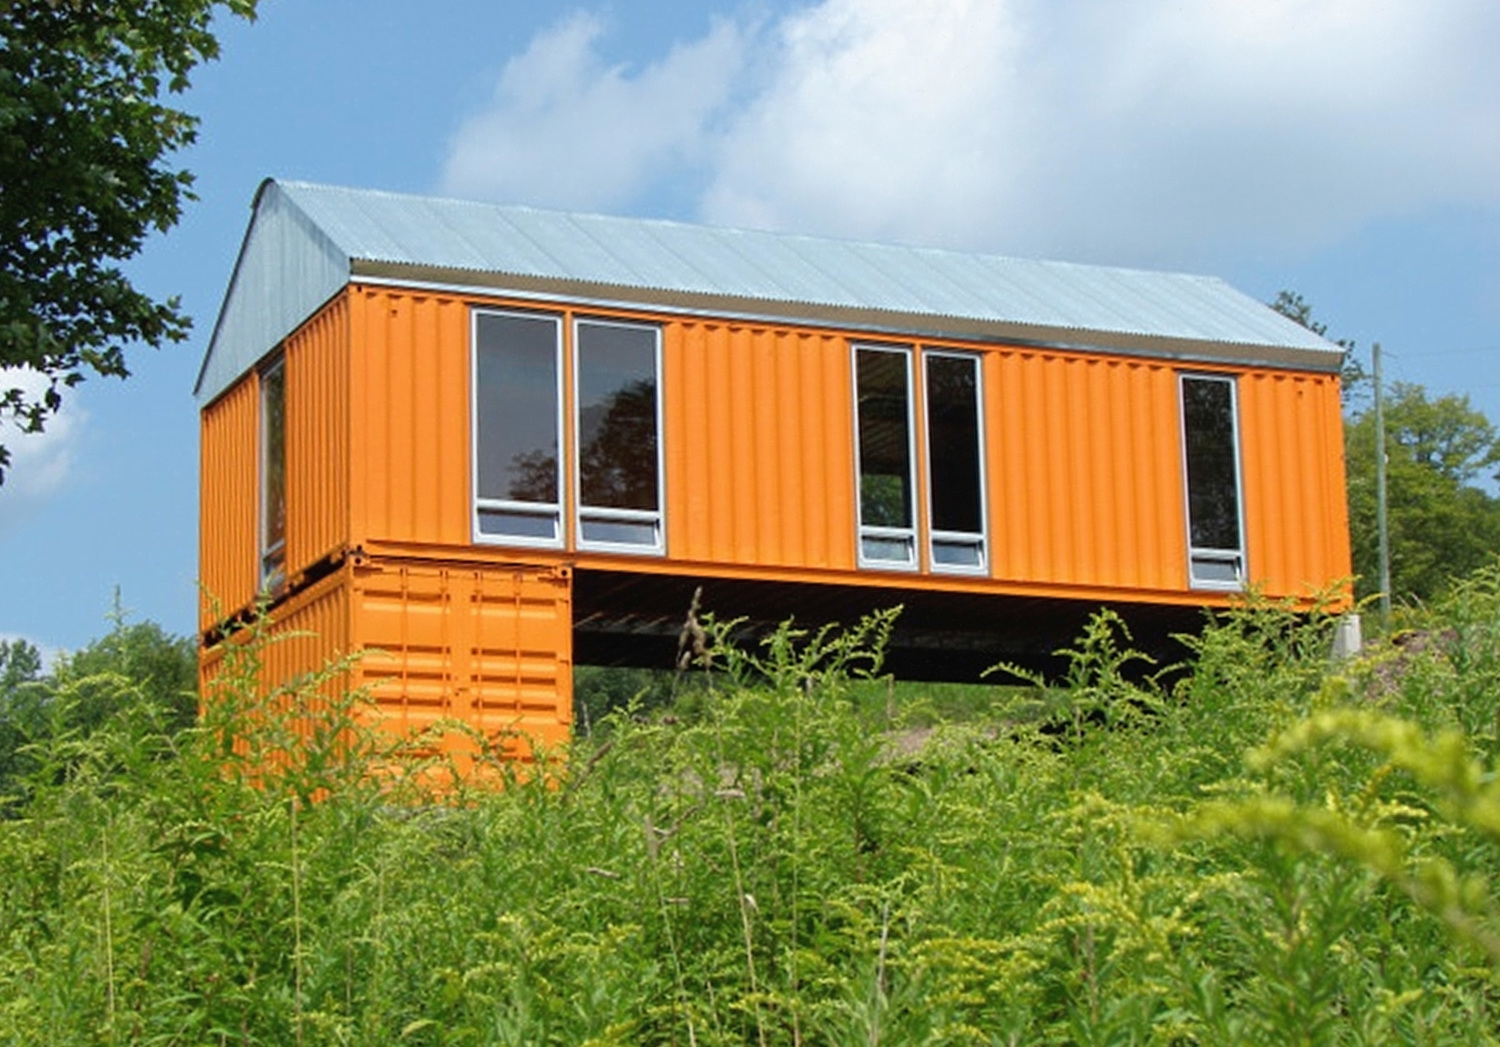 Catskills shipping container homes time steele new york times - Container homes com ...